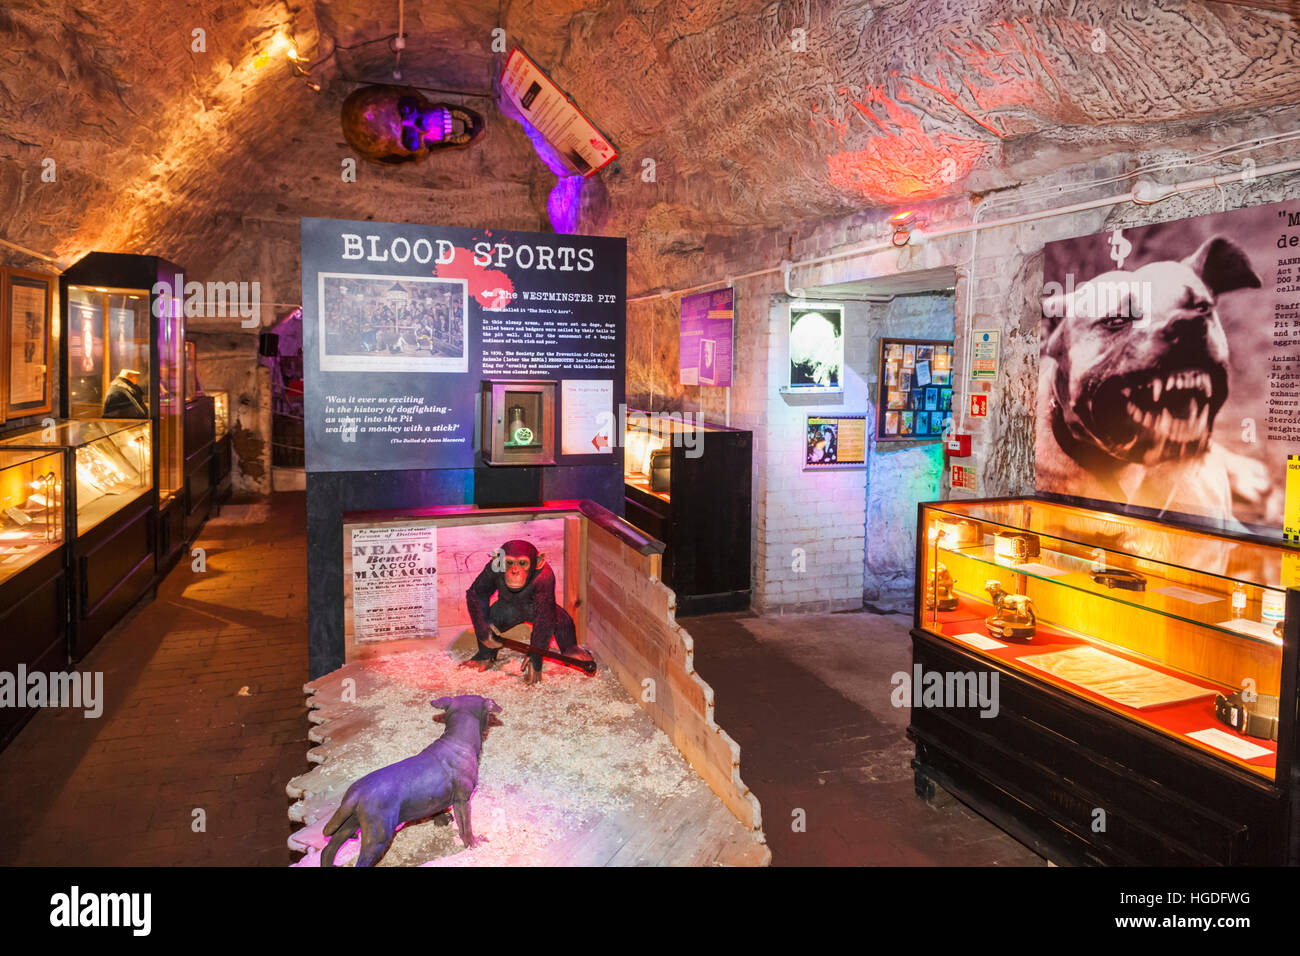 England, East Sussex, Hastings, The True Crime Museum, Interior View - Stock Image